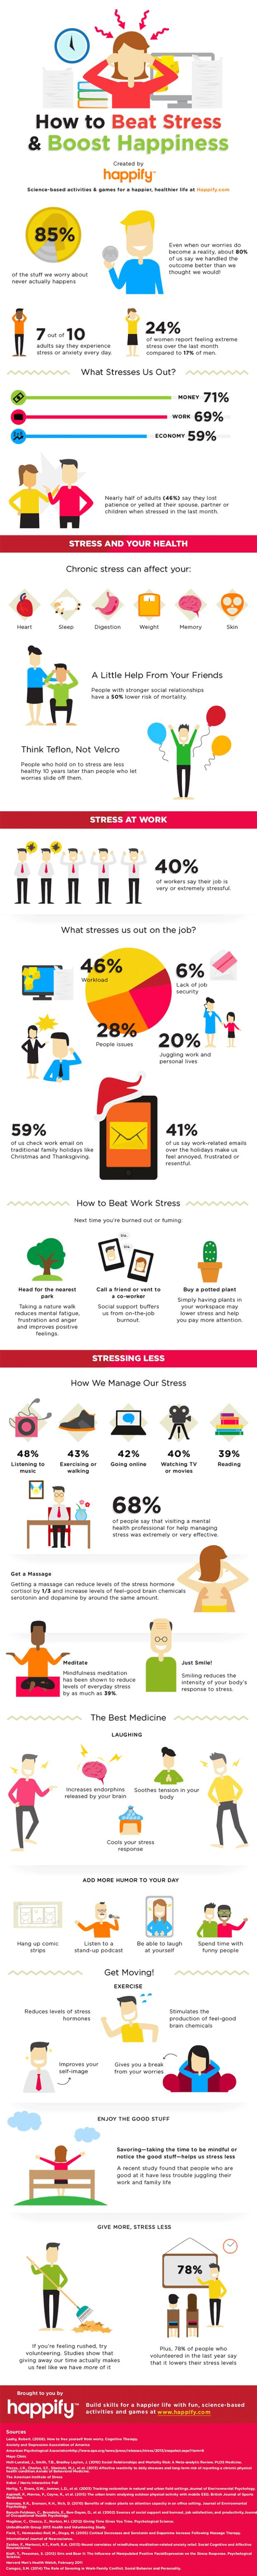 How To Be Happy And Beat Stress